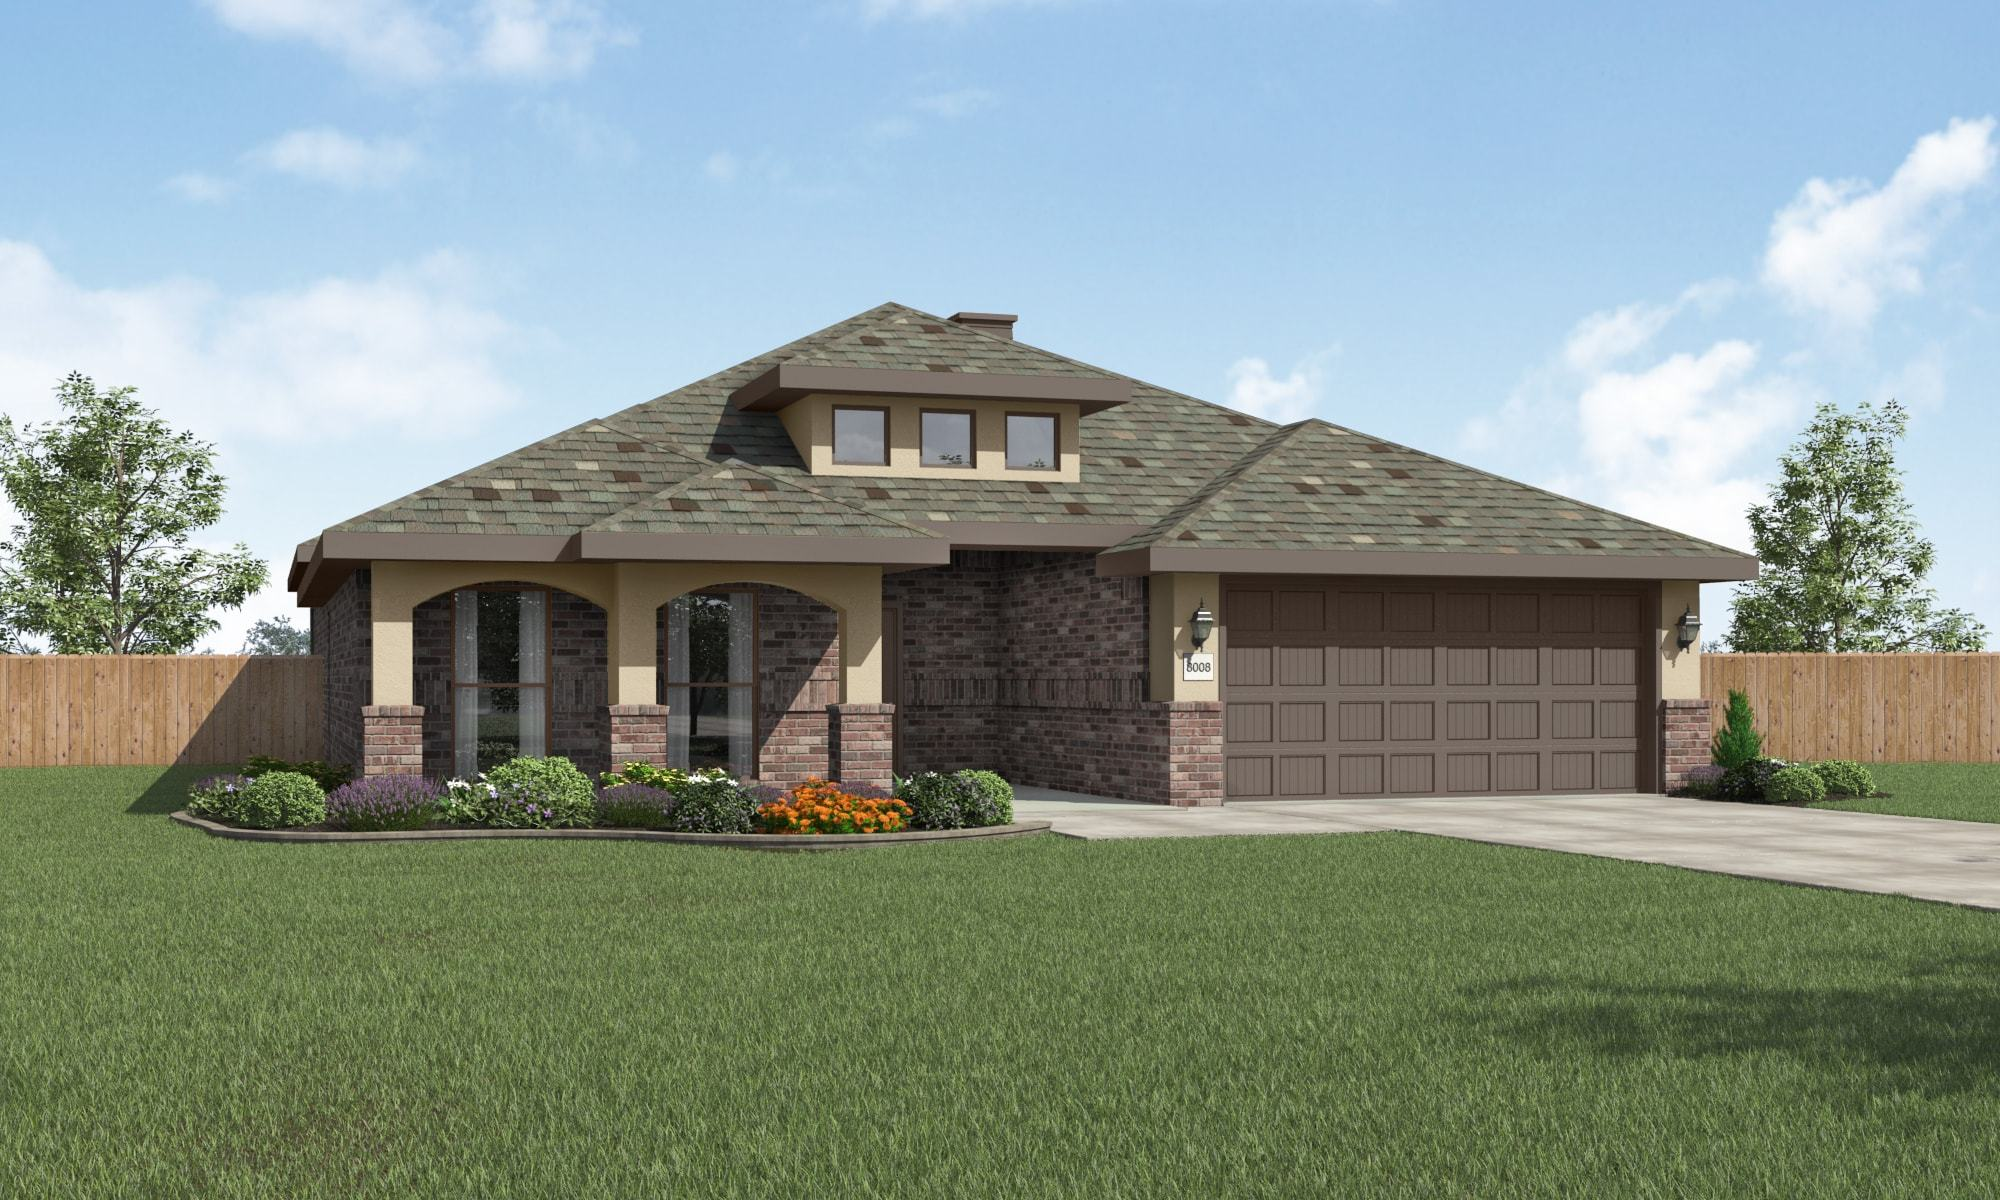 Single Family for Sale at Heritage Hills - Carol Anne 8780 Heritage Hills Parkway Amarillo, Texas 79119 United States